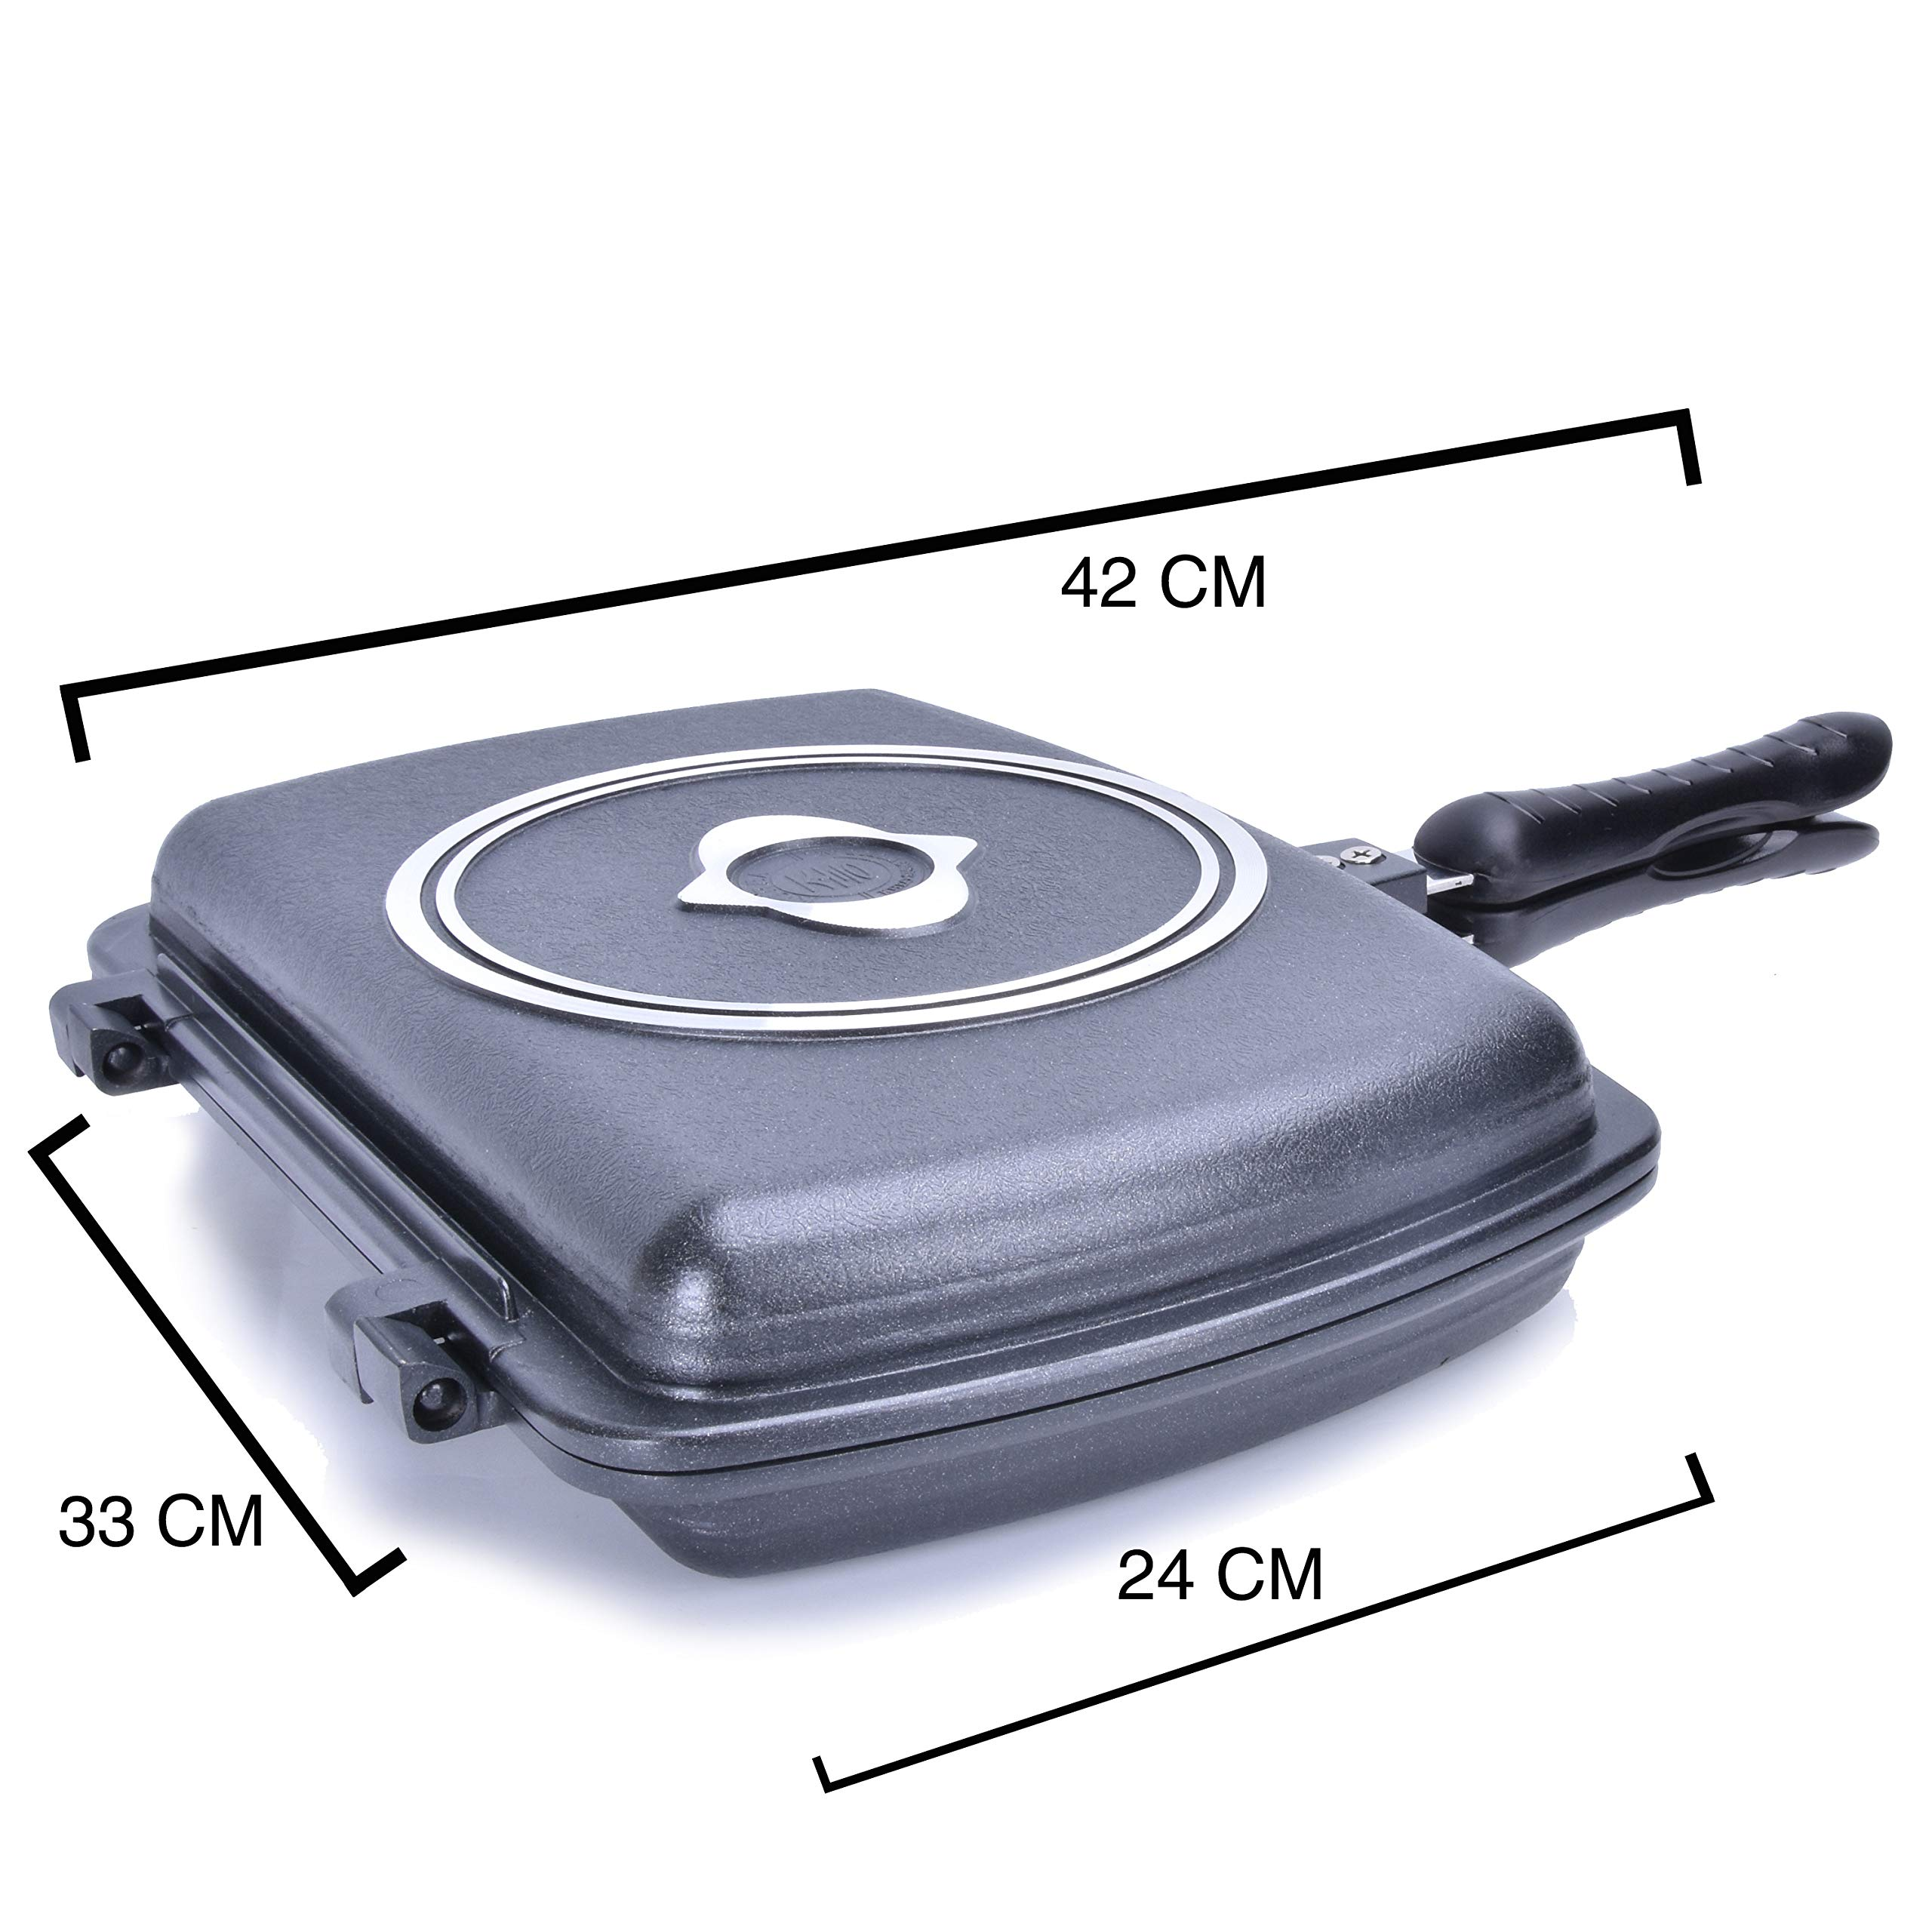 YONATA Double Sided Portable BBQ Grill Pan,Separate Detachable Double Pan Nonstick Barbecue Plate For Indoor and Outdoor Cooked Chicken,Fish,Egg by YONATA (Image #2)